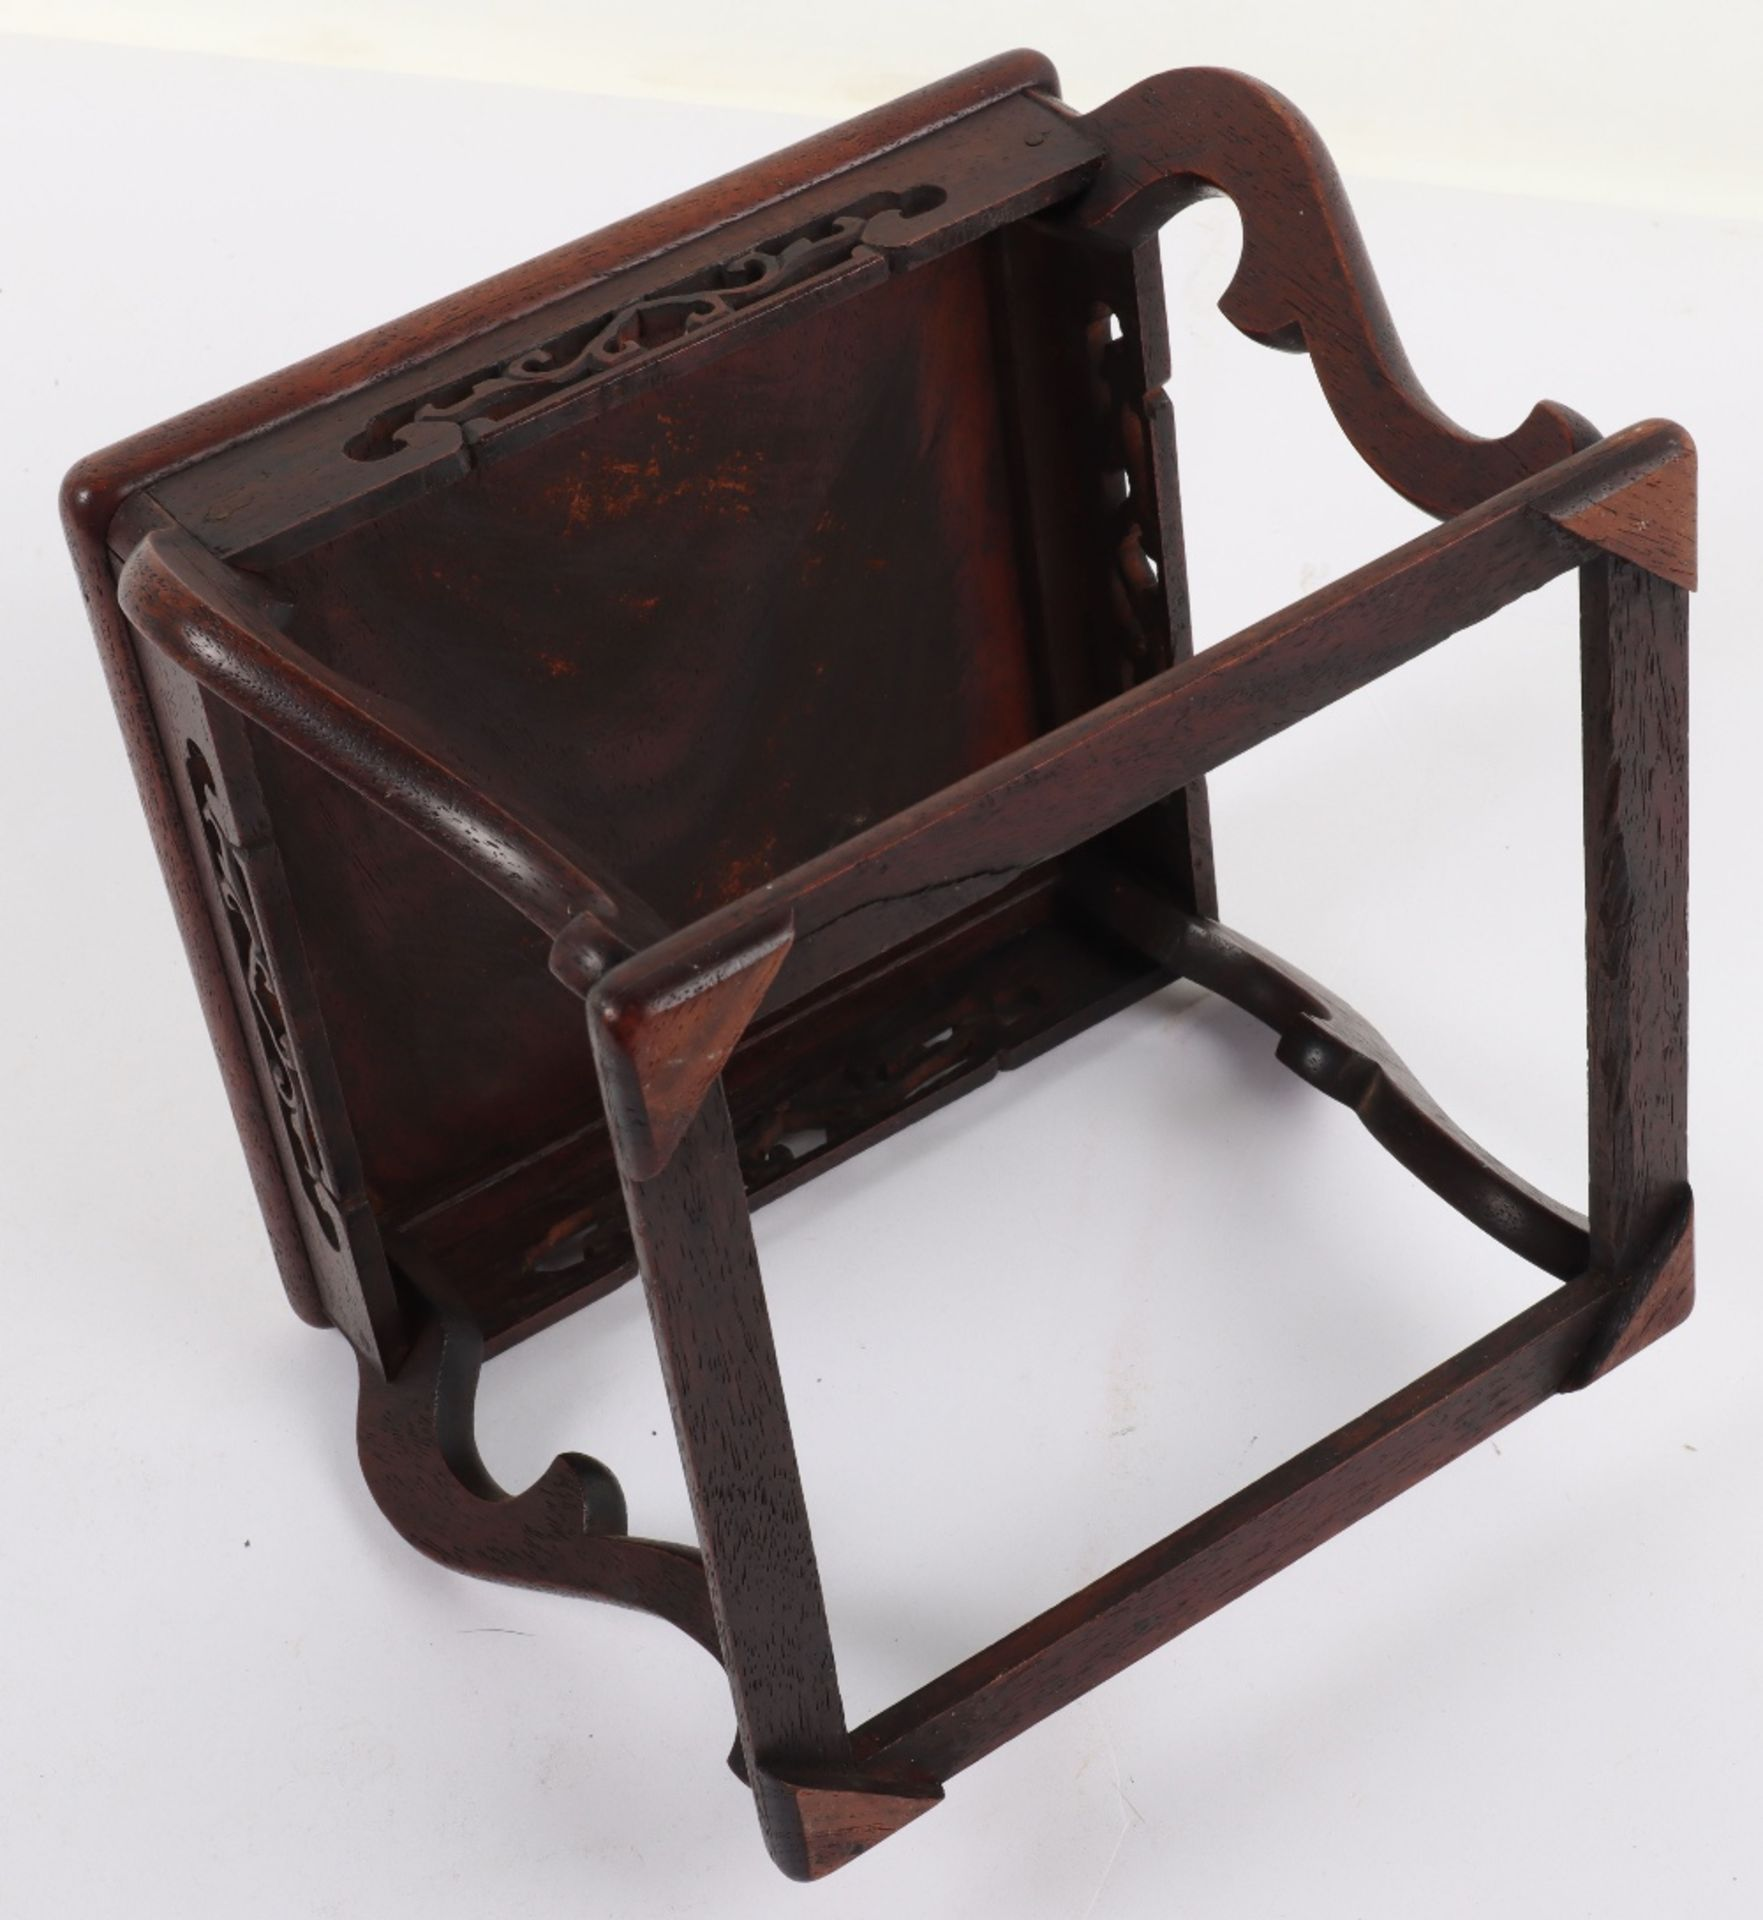 A 19th century small Chinese hardwood carved candle stand - Image 5 of 6